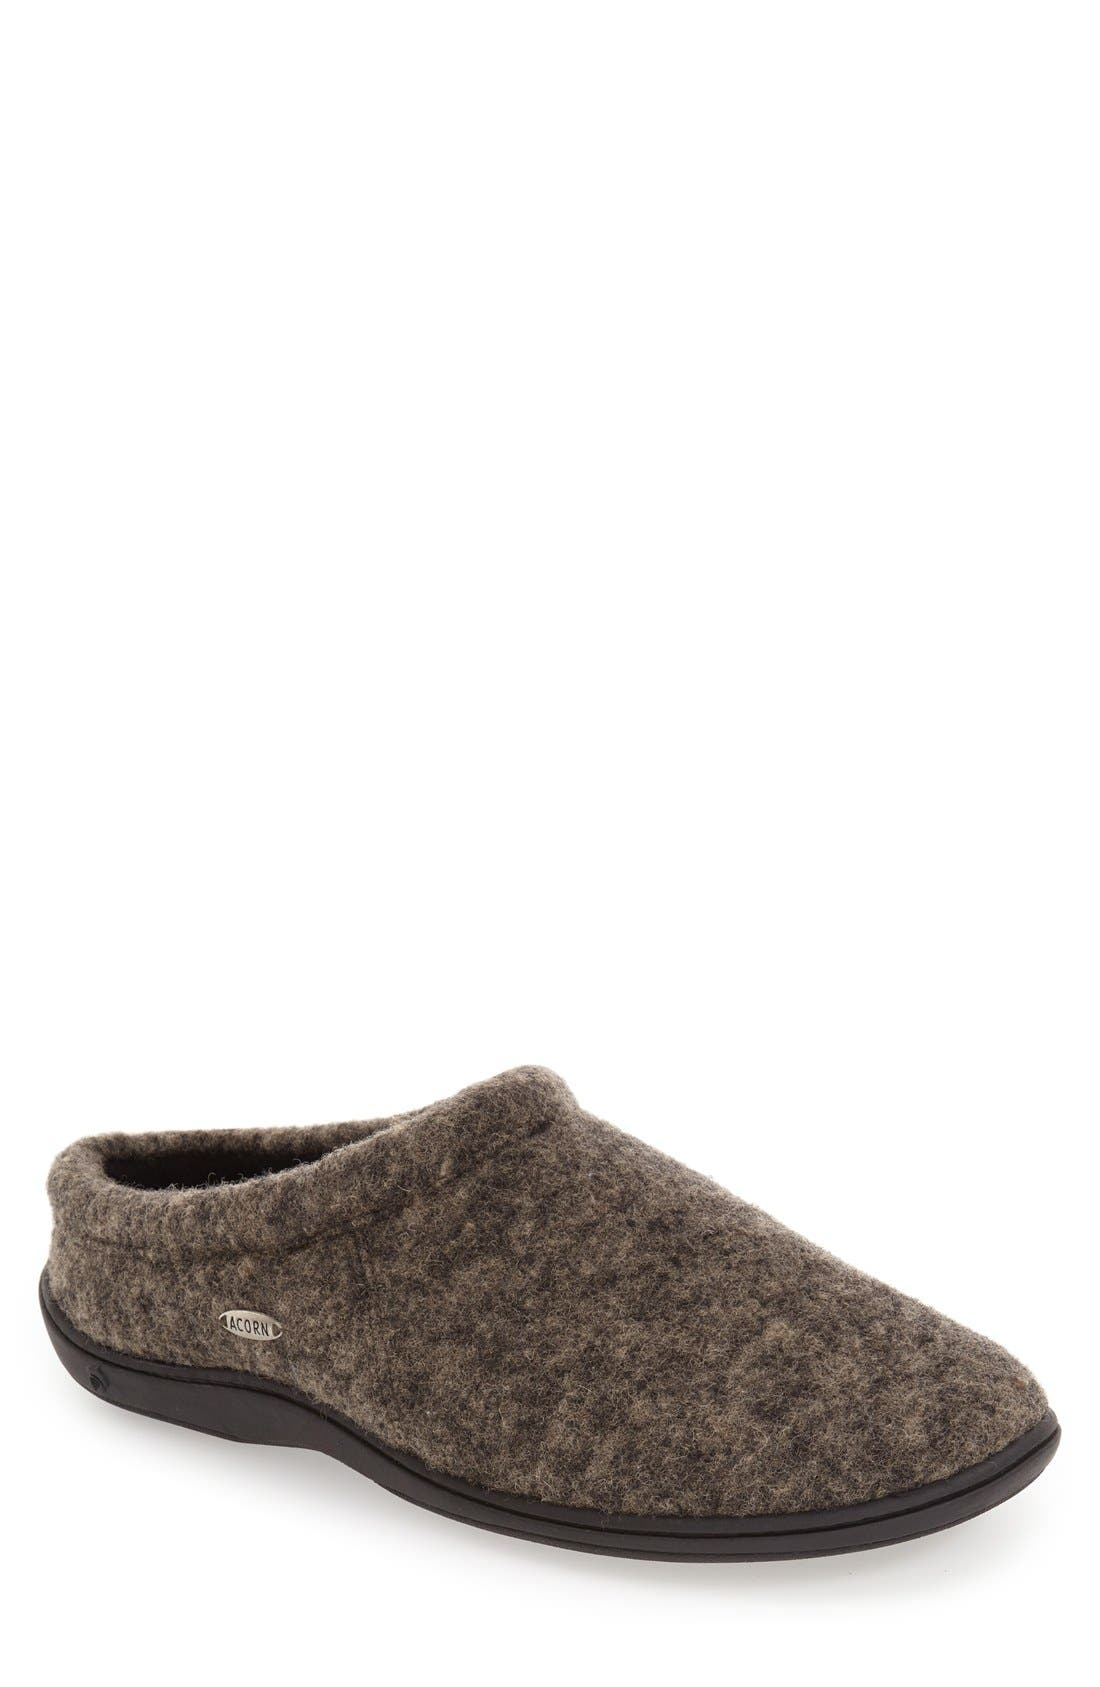 'Digby' Slipper,                         Main,                         color, HEATHER GREIGE